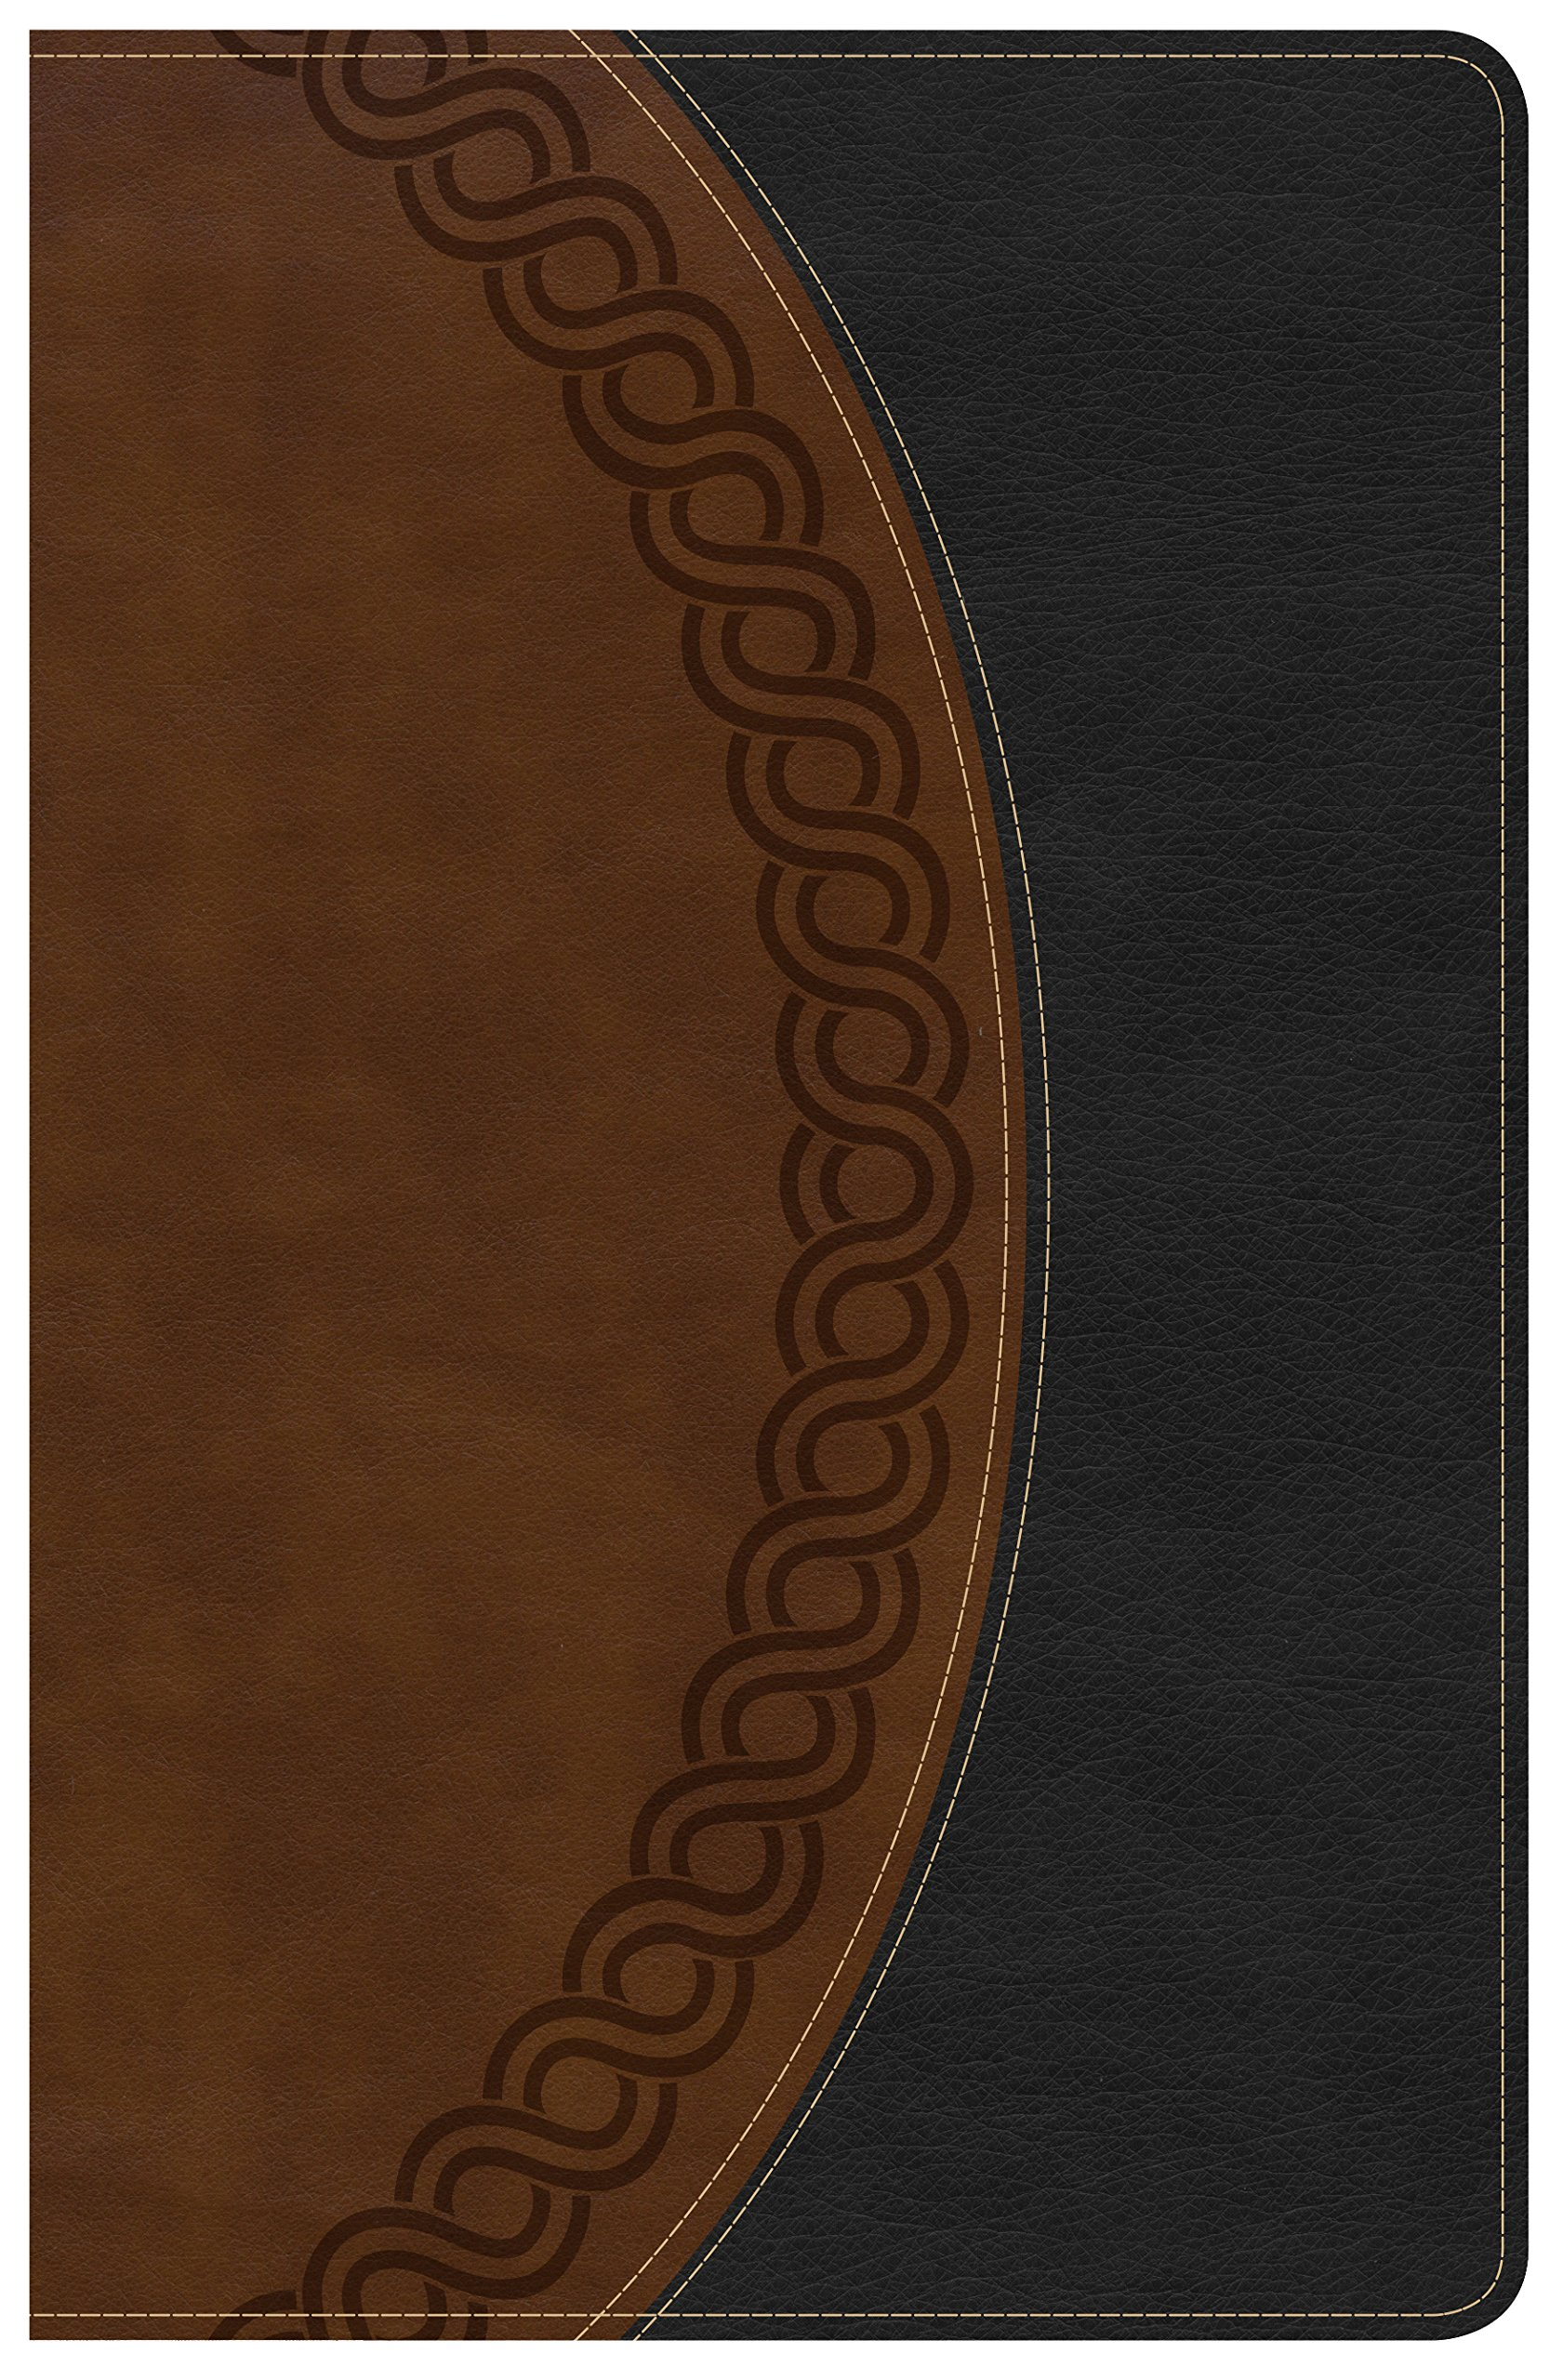 Read Online KJV Large Print Personal Size Reference Bible, Black/Brown Deluxe LeatherTouch, Indexed pdf epub